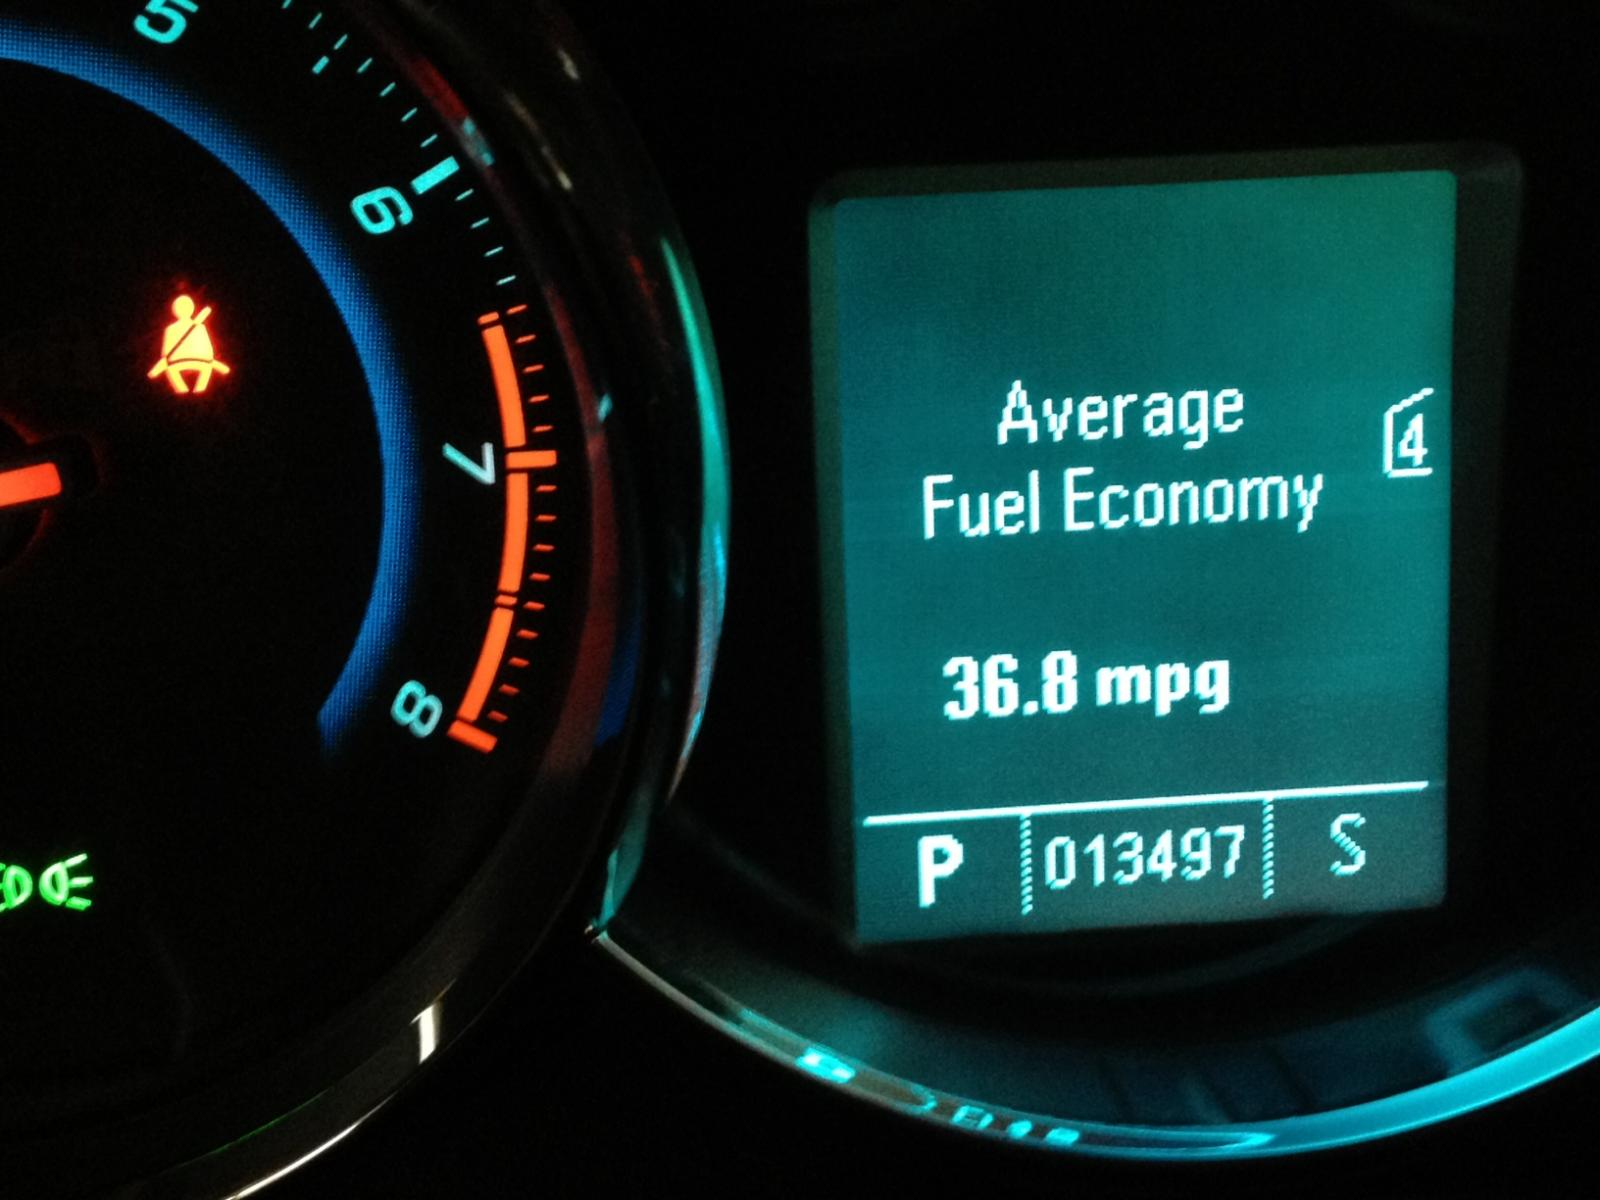 How to Get Better Fuel Economy - Page 20